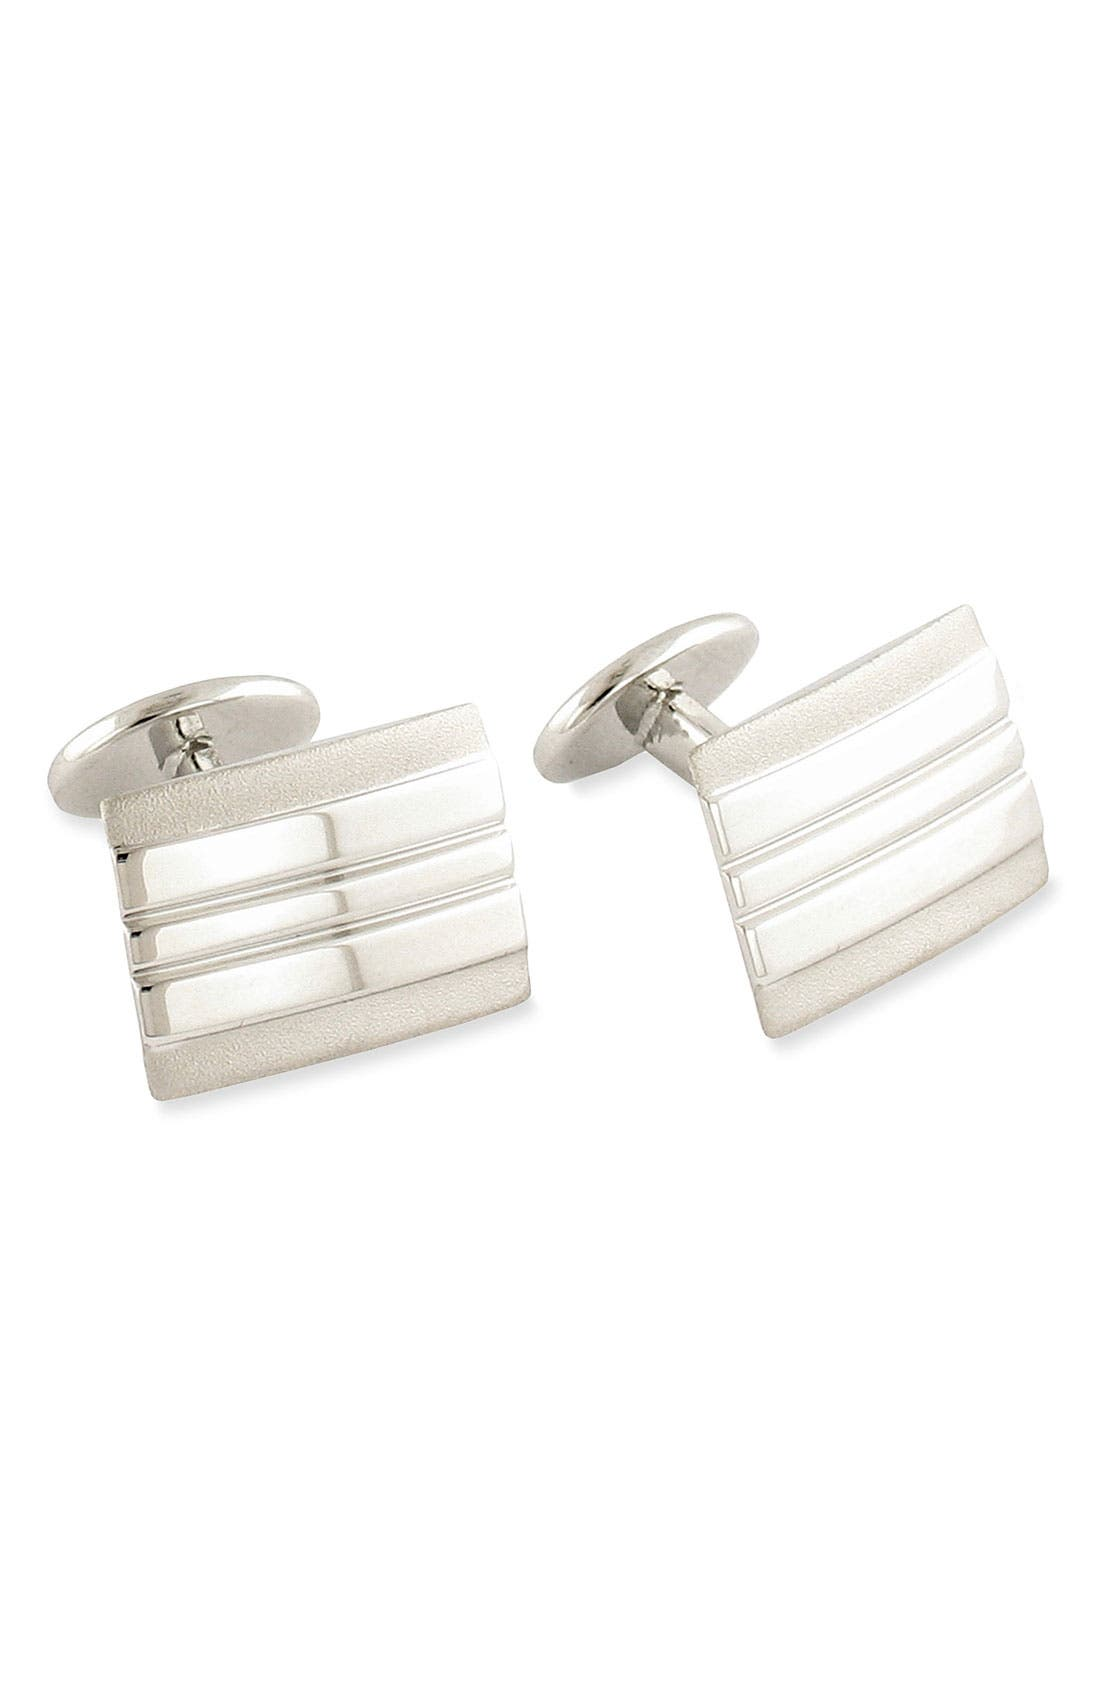 Sterling Silver Cuff Links,                         Main,                         color, SILVER RECTANGLE